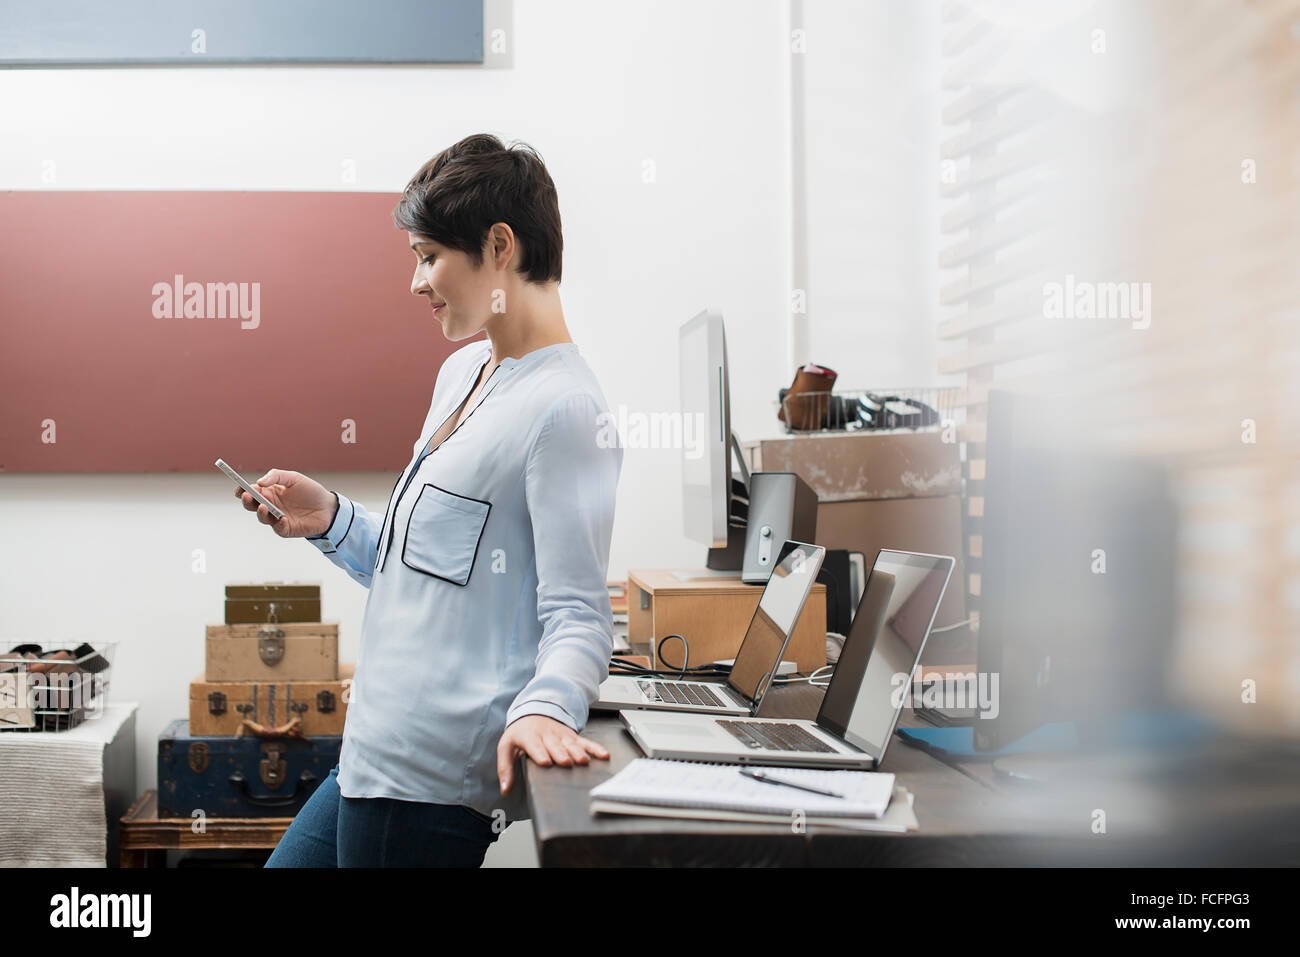 A woman in a home office with a desk with two laptops, checking her smart phone. - Stock Image